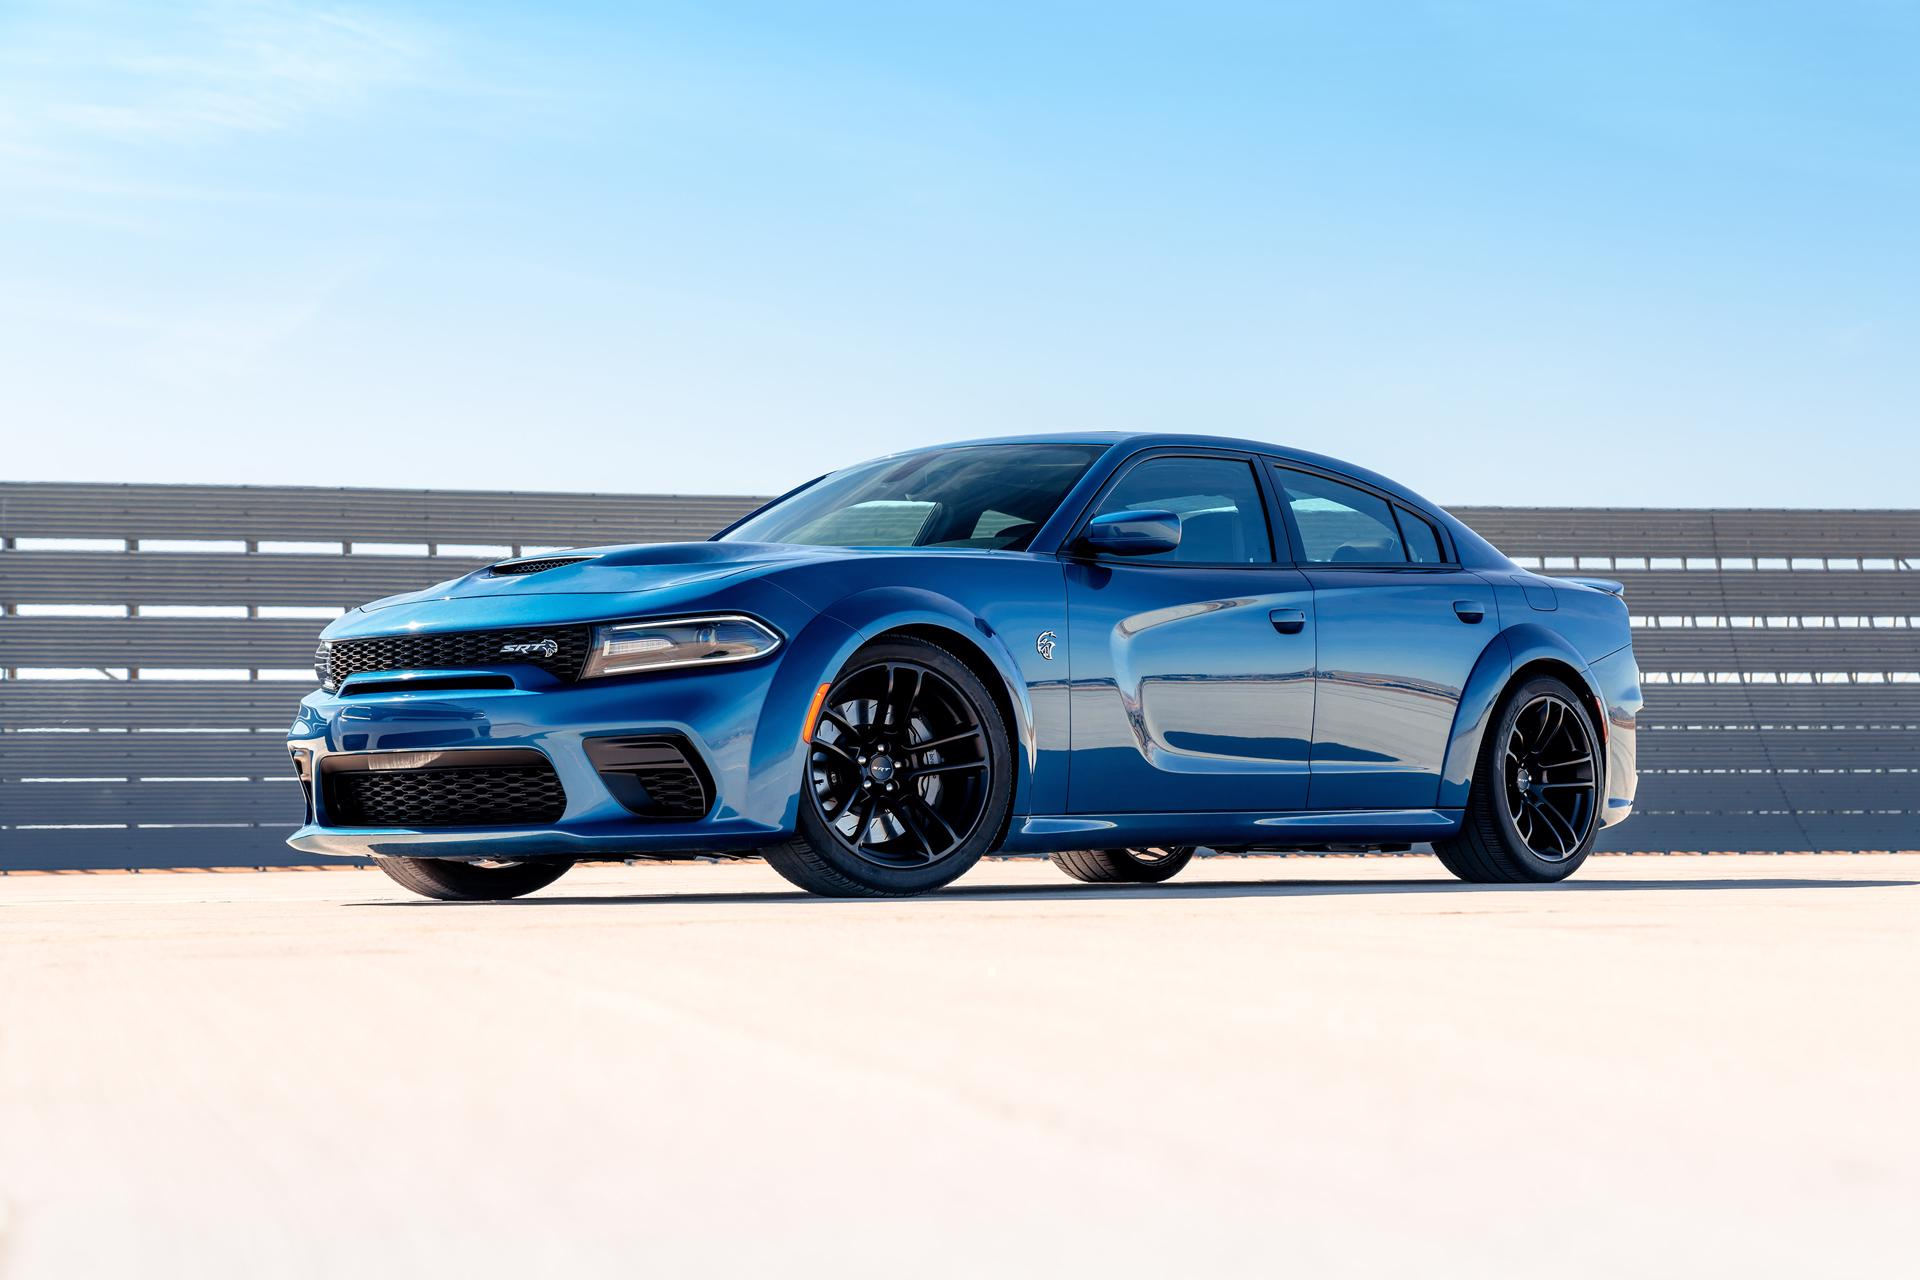 Dodge Charger SRT Hellcat Widebody concept prepared for Pikes Peak